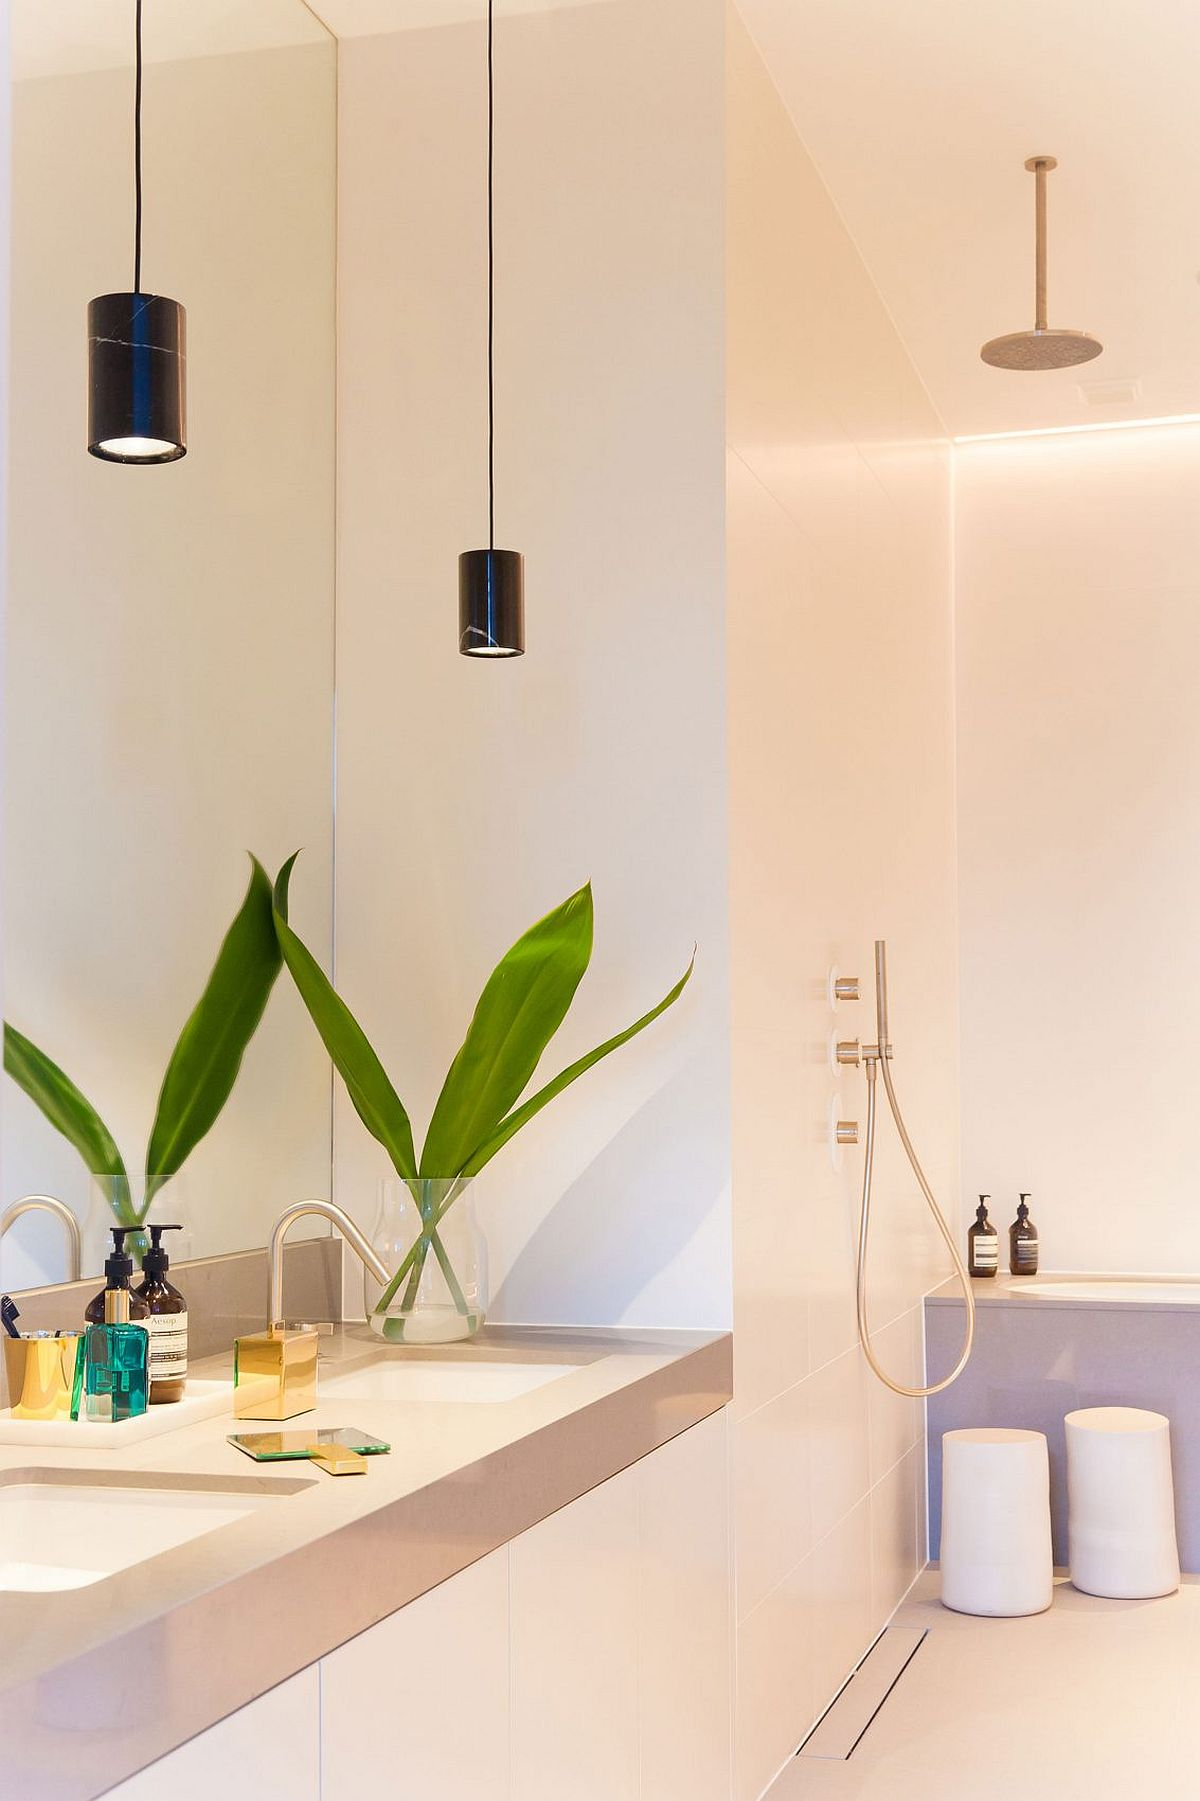 Lighting transforms the ambince of the cool bathroom